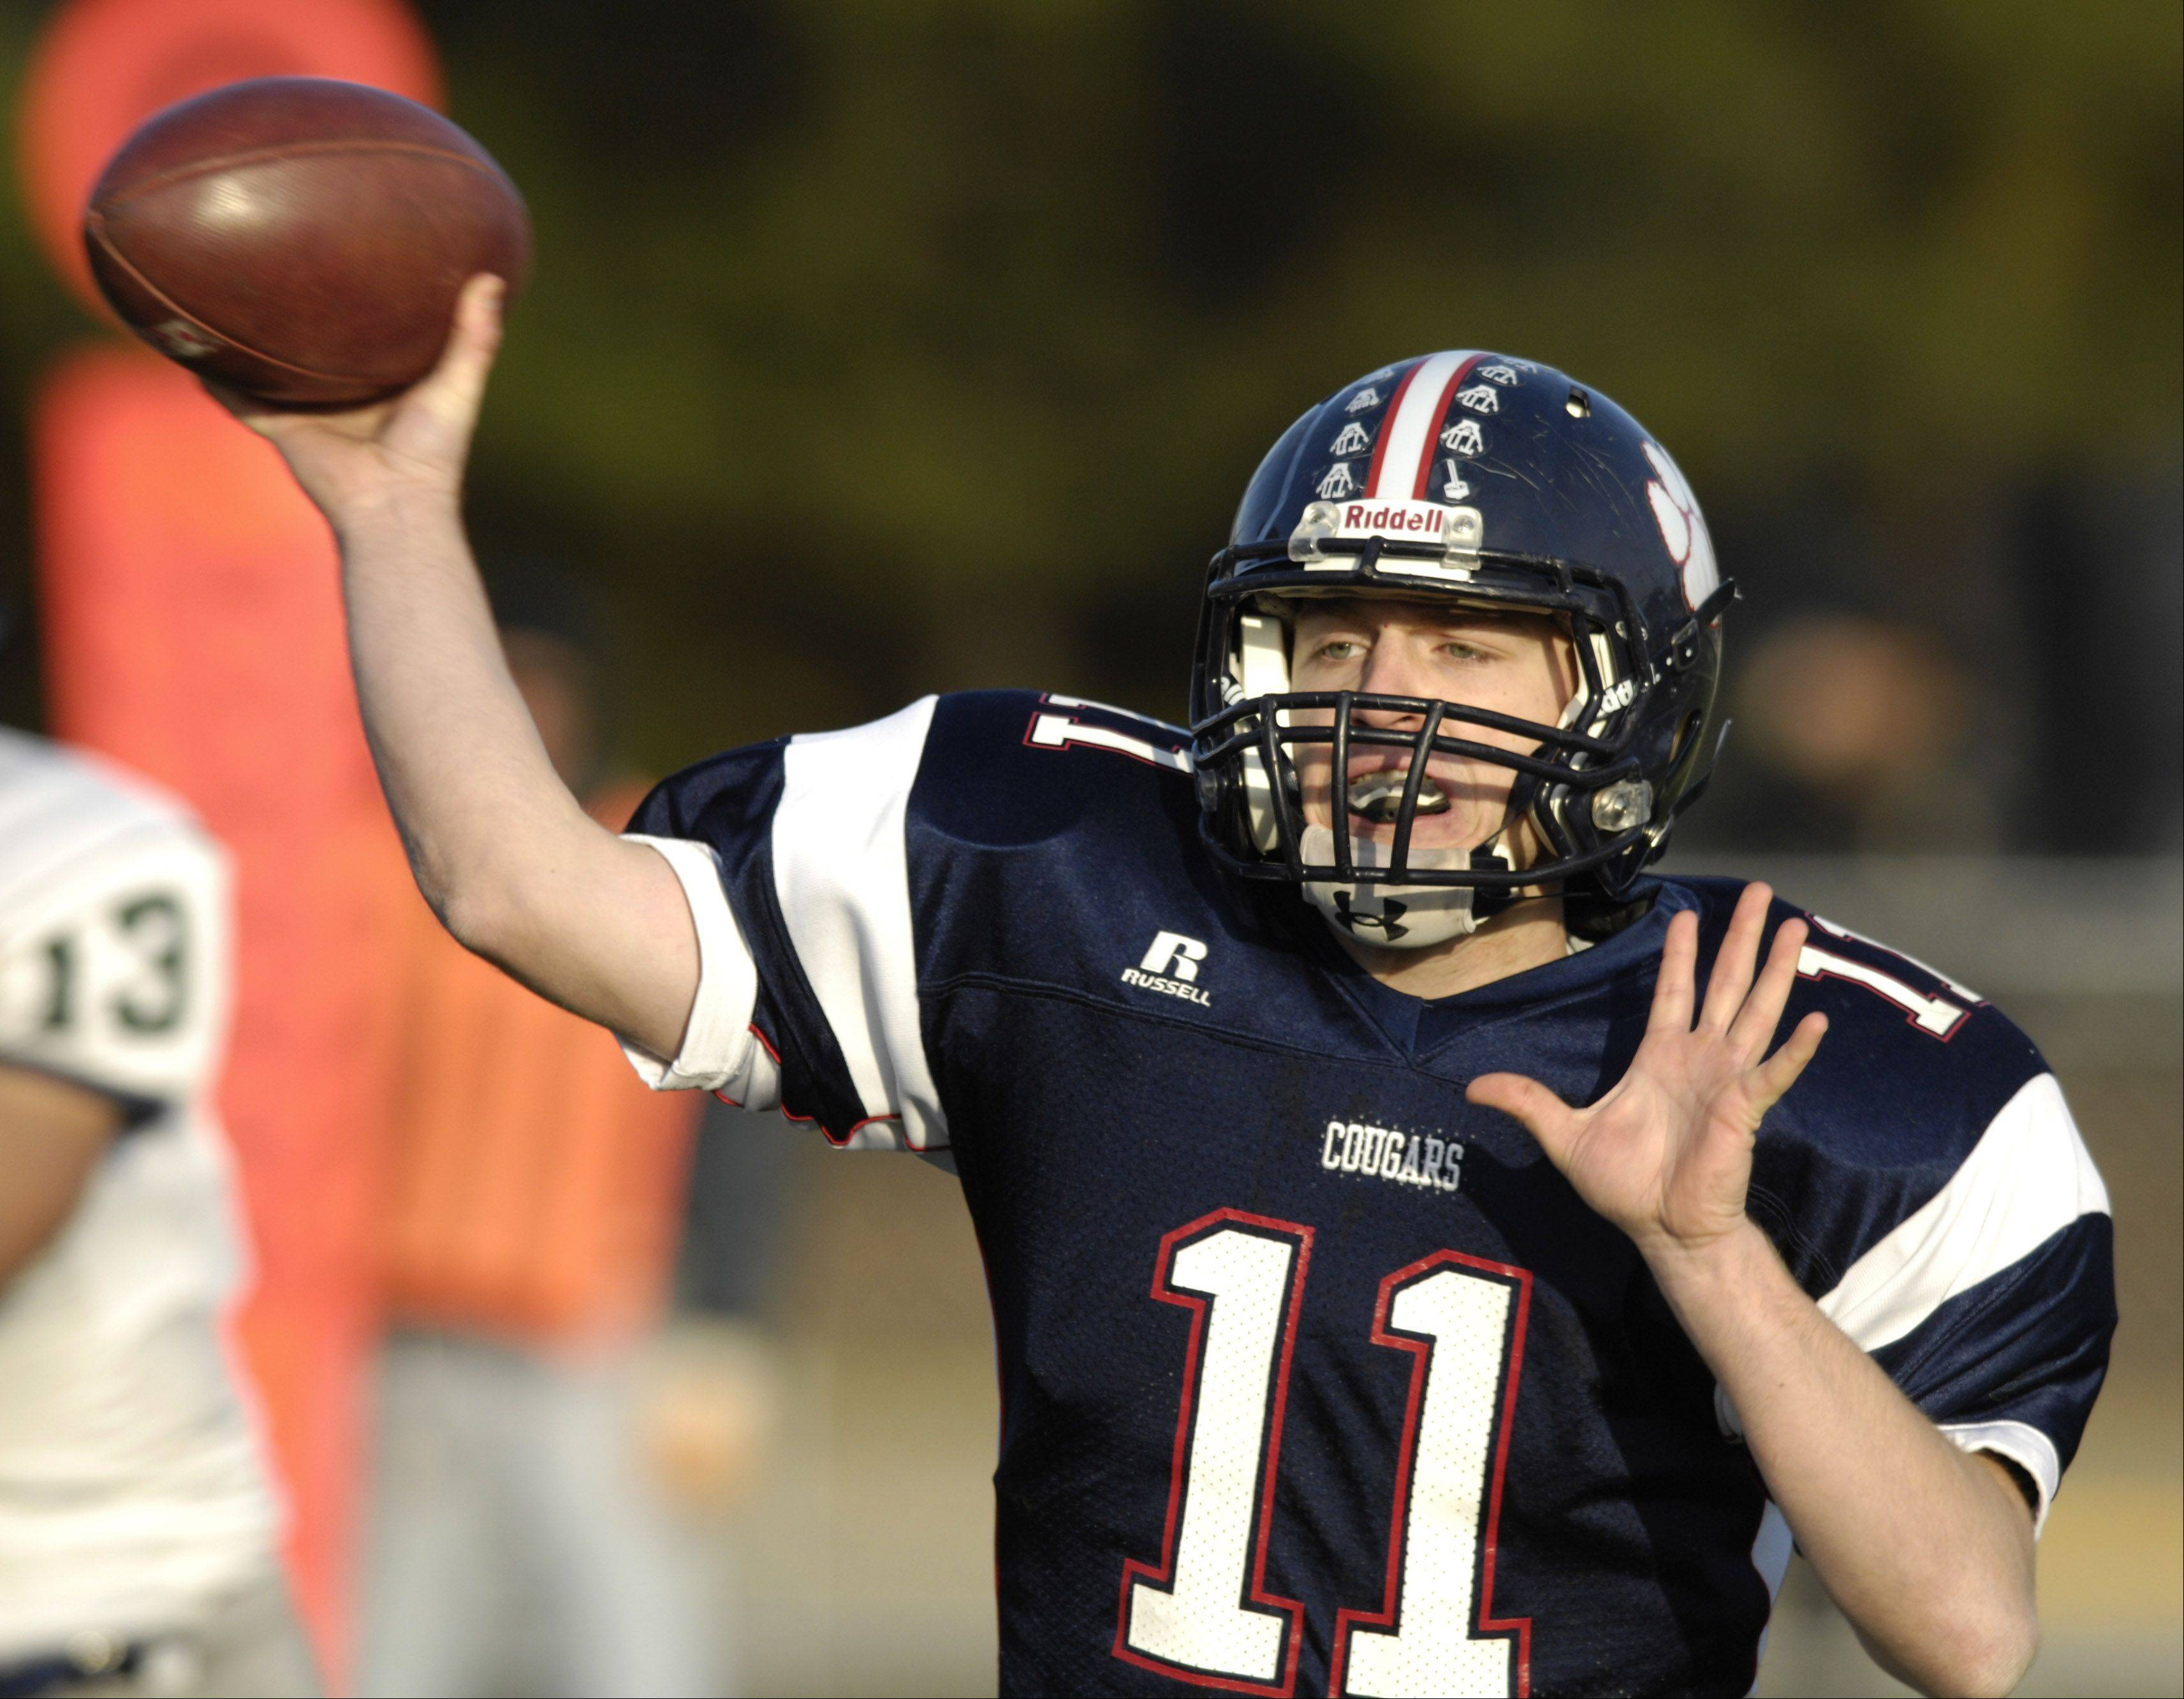 The return of skilled players such as quarterback Danny Modelski, here tossing a passing during last year�s playoff game against New Trier, bodes well for Conant.